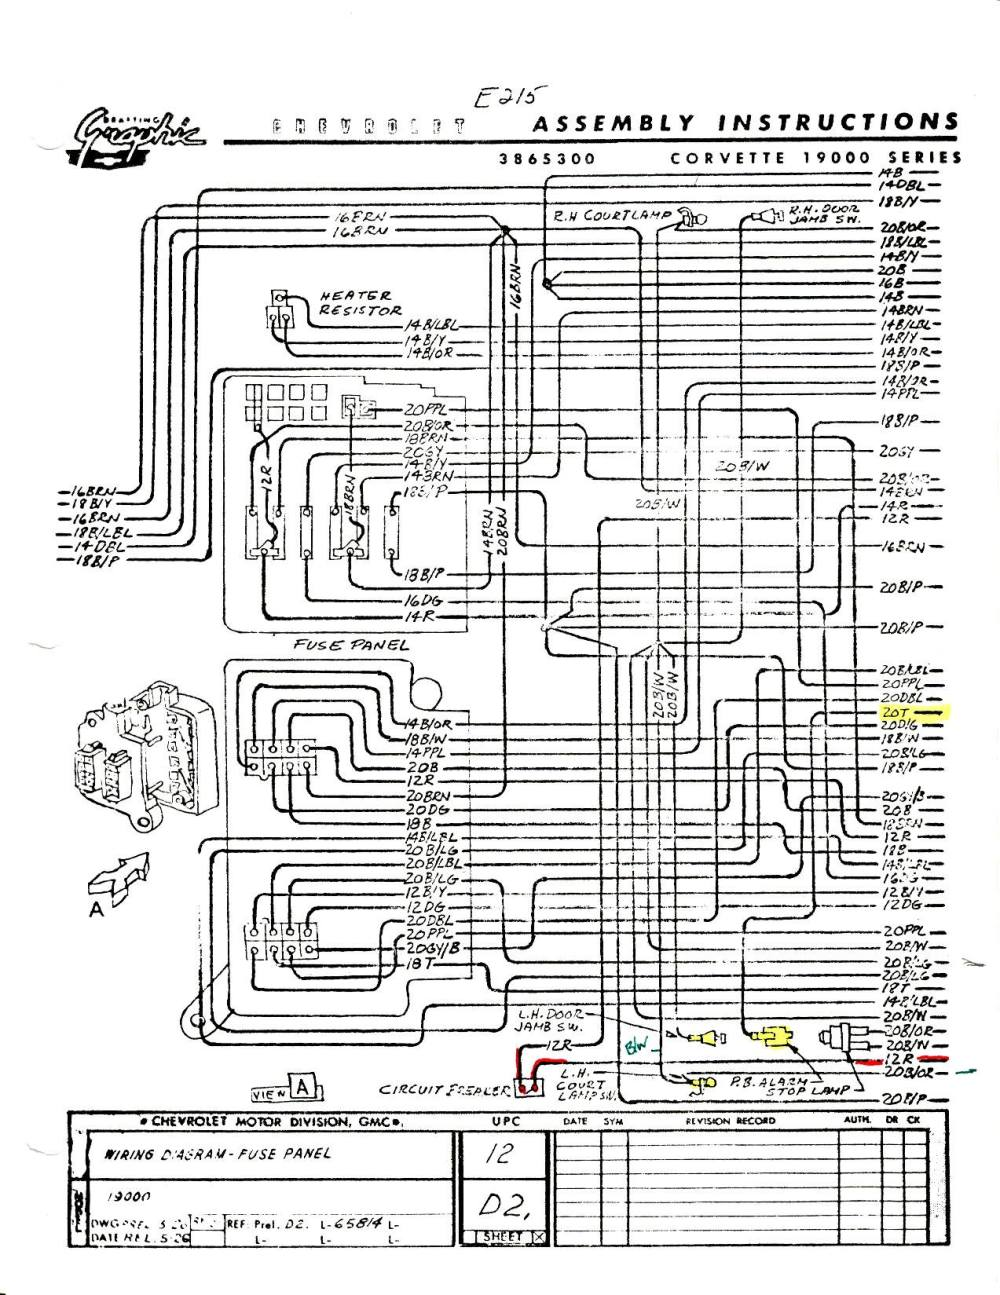 medium resolution of 1960 chevy ignition switch wiring diagram wiring library 1964 corvette wiring diagram 1958 corvette dash wiring diagram